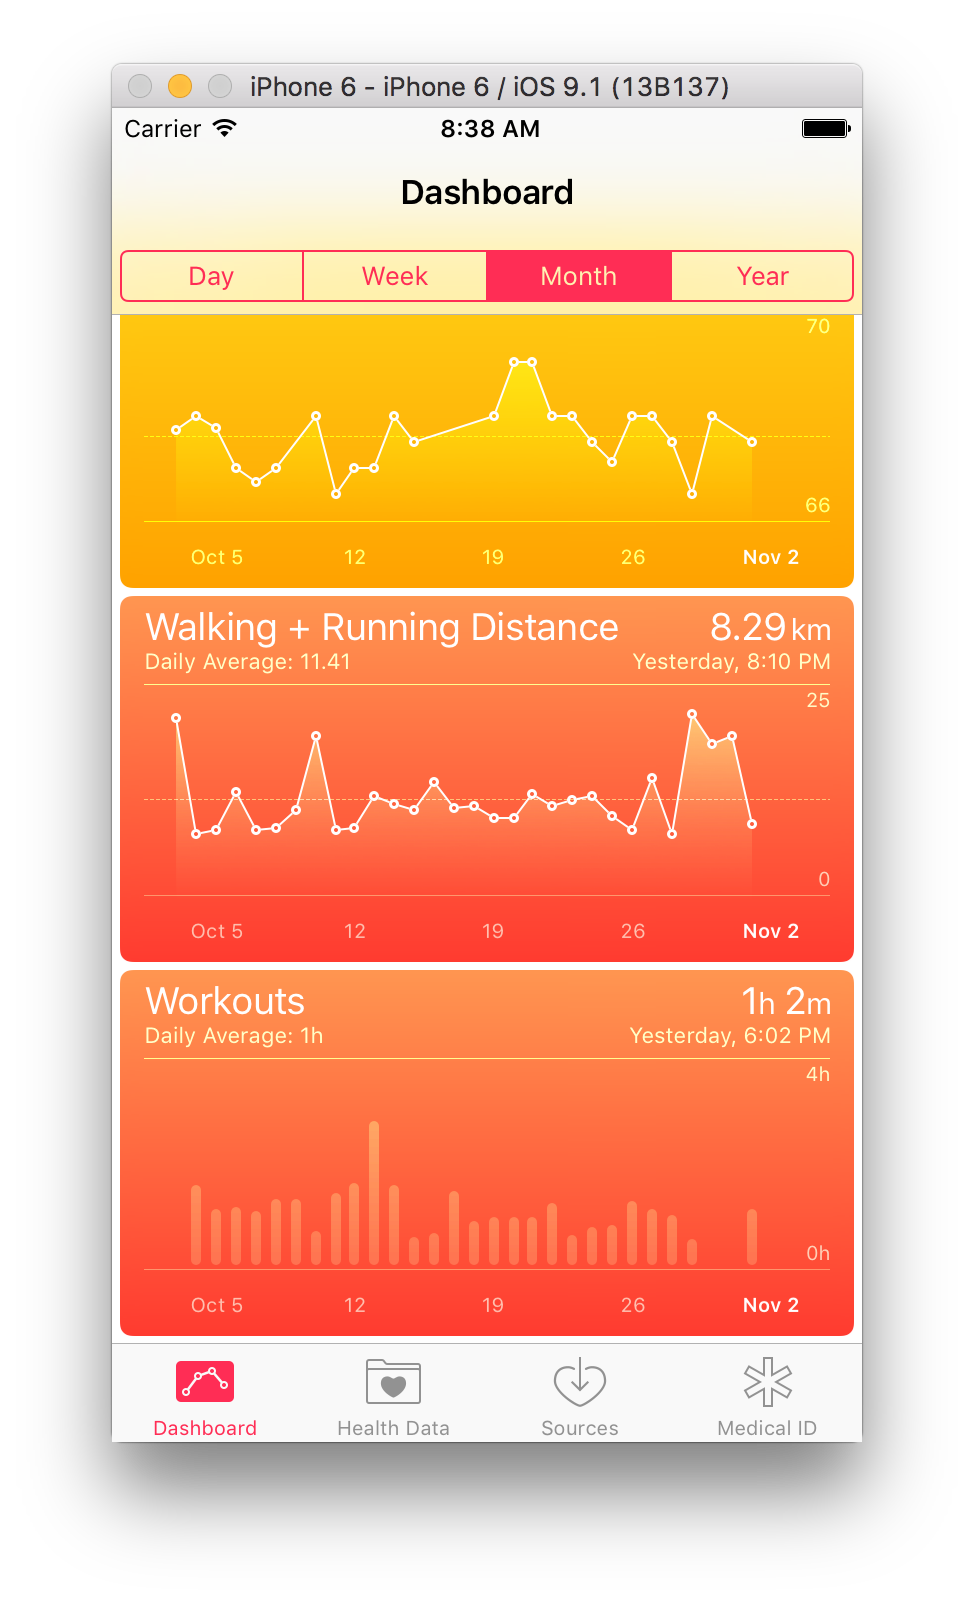 The imported data in the HealthApp at the simulator.